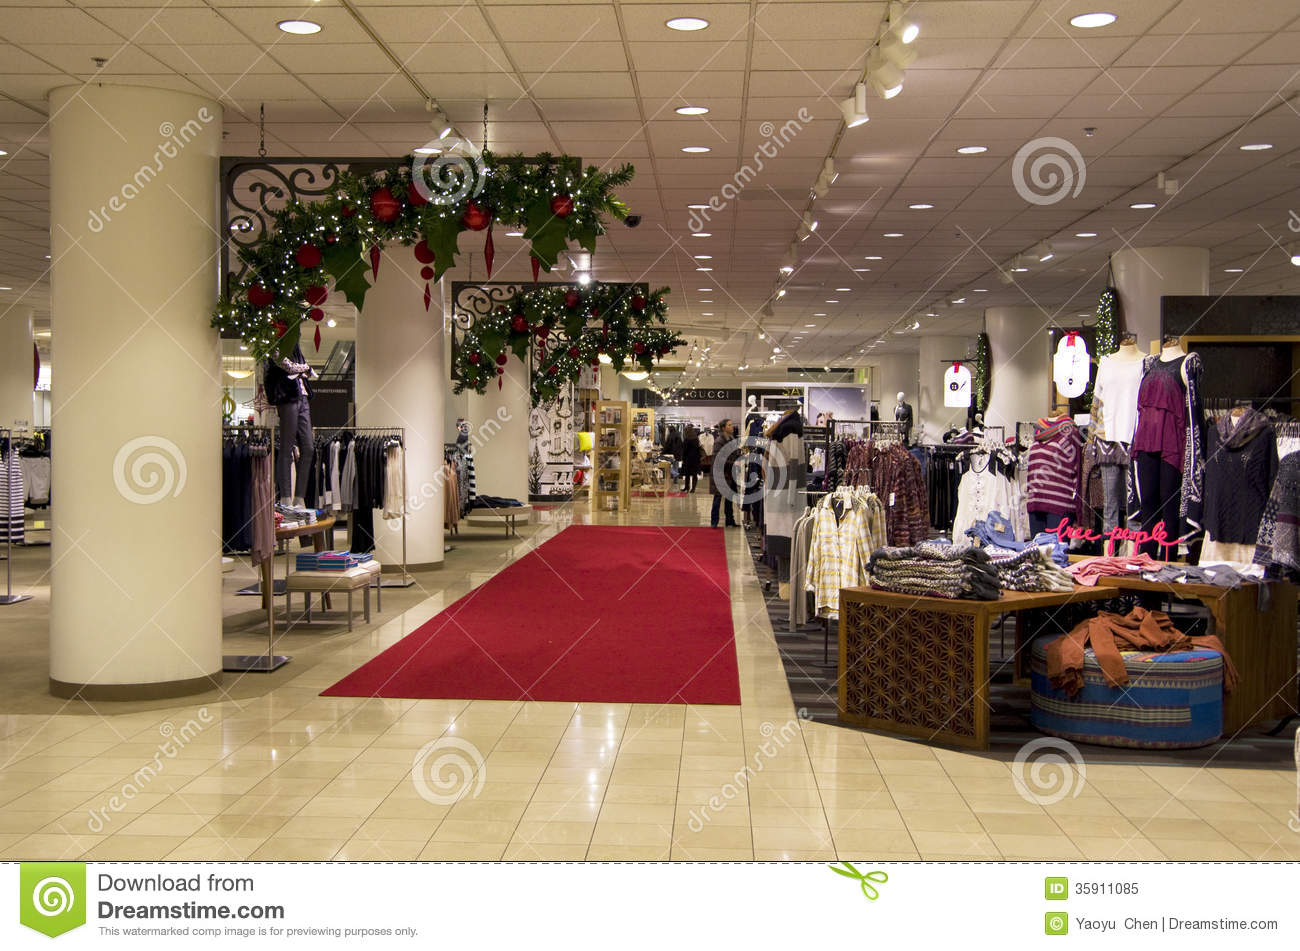 Decoration Stores Department Store Mall Shopping Tree Ligh: list of home decor stores